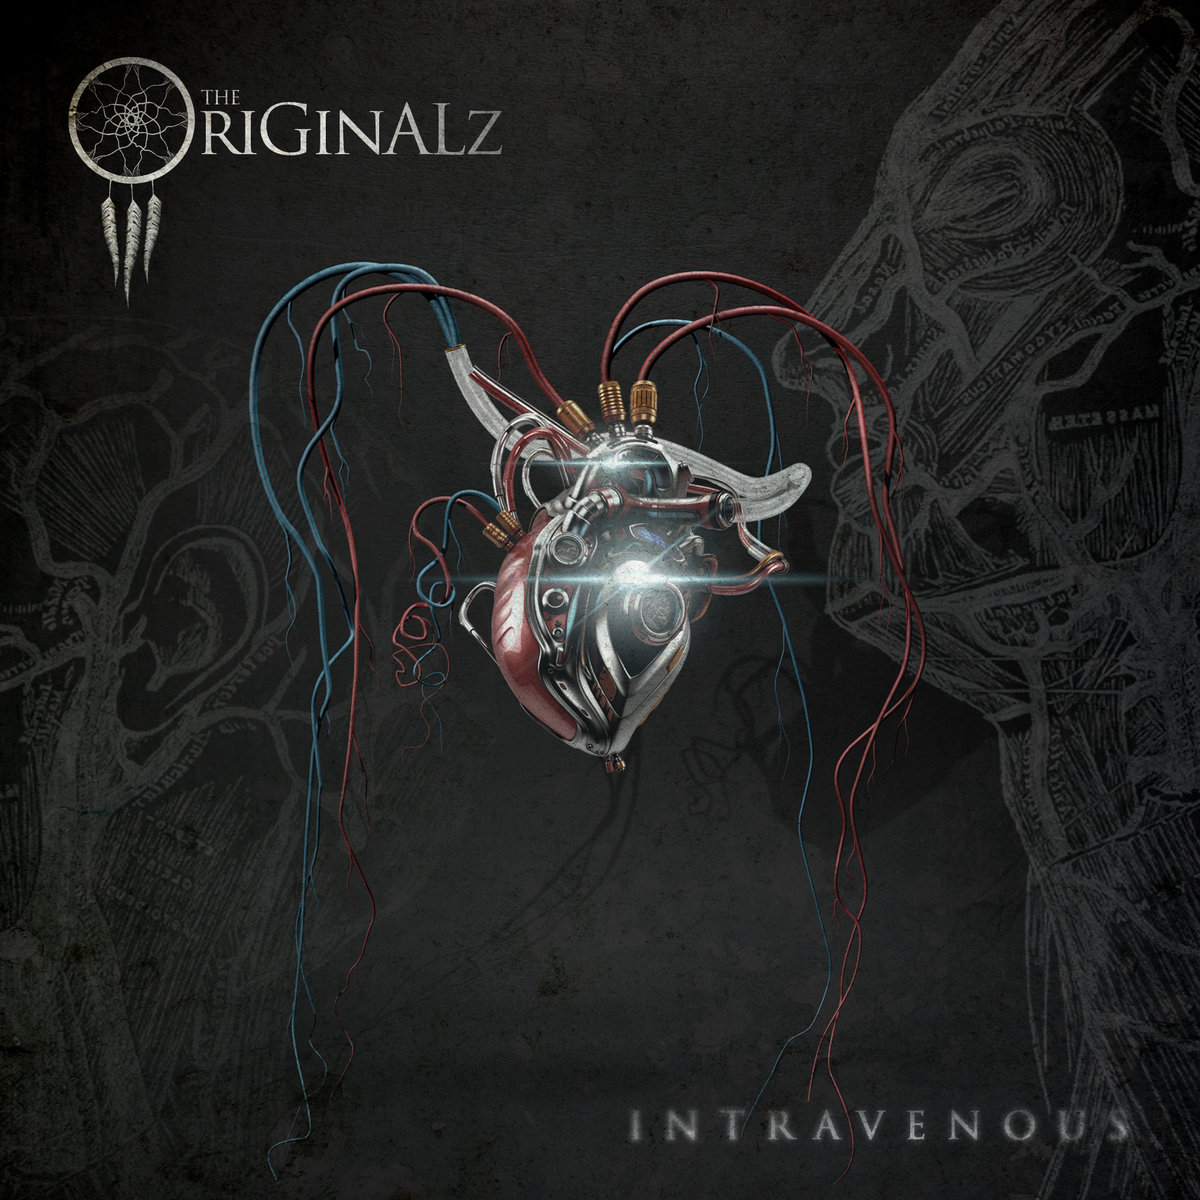 The OriGinALz - Intravenous (LabRat Remix) @ 'Intravenous' album (Austin)